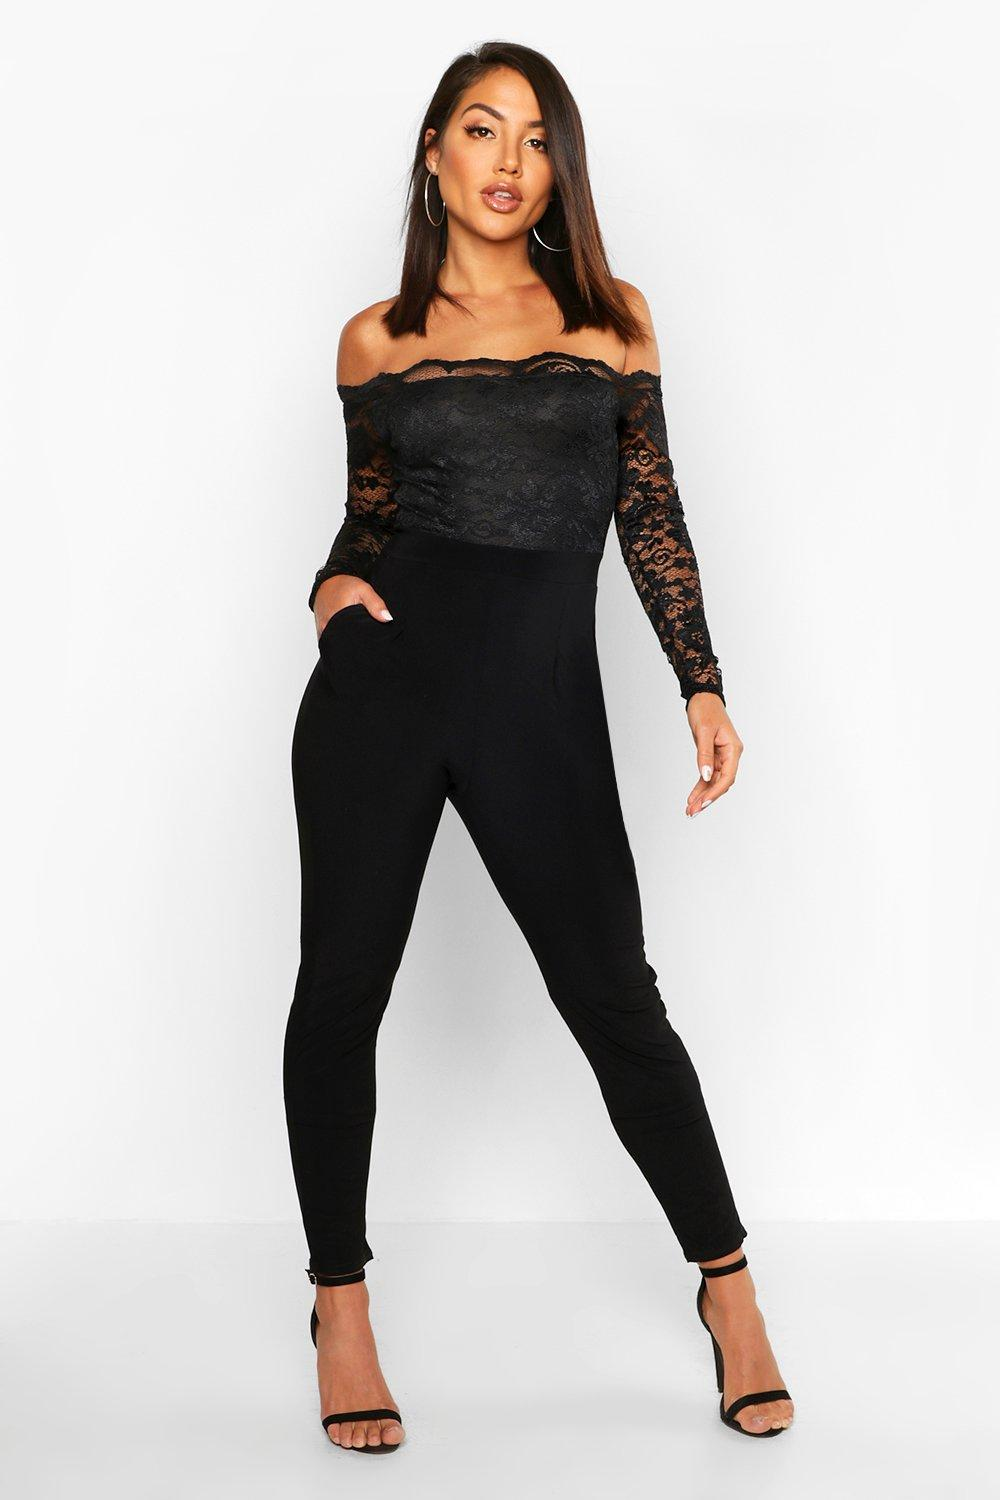 a46f3db1f7c3 Scallop Lace Off The Shoulder Jumpsuit. Hover to zoom